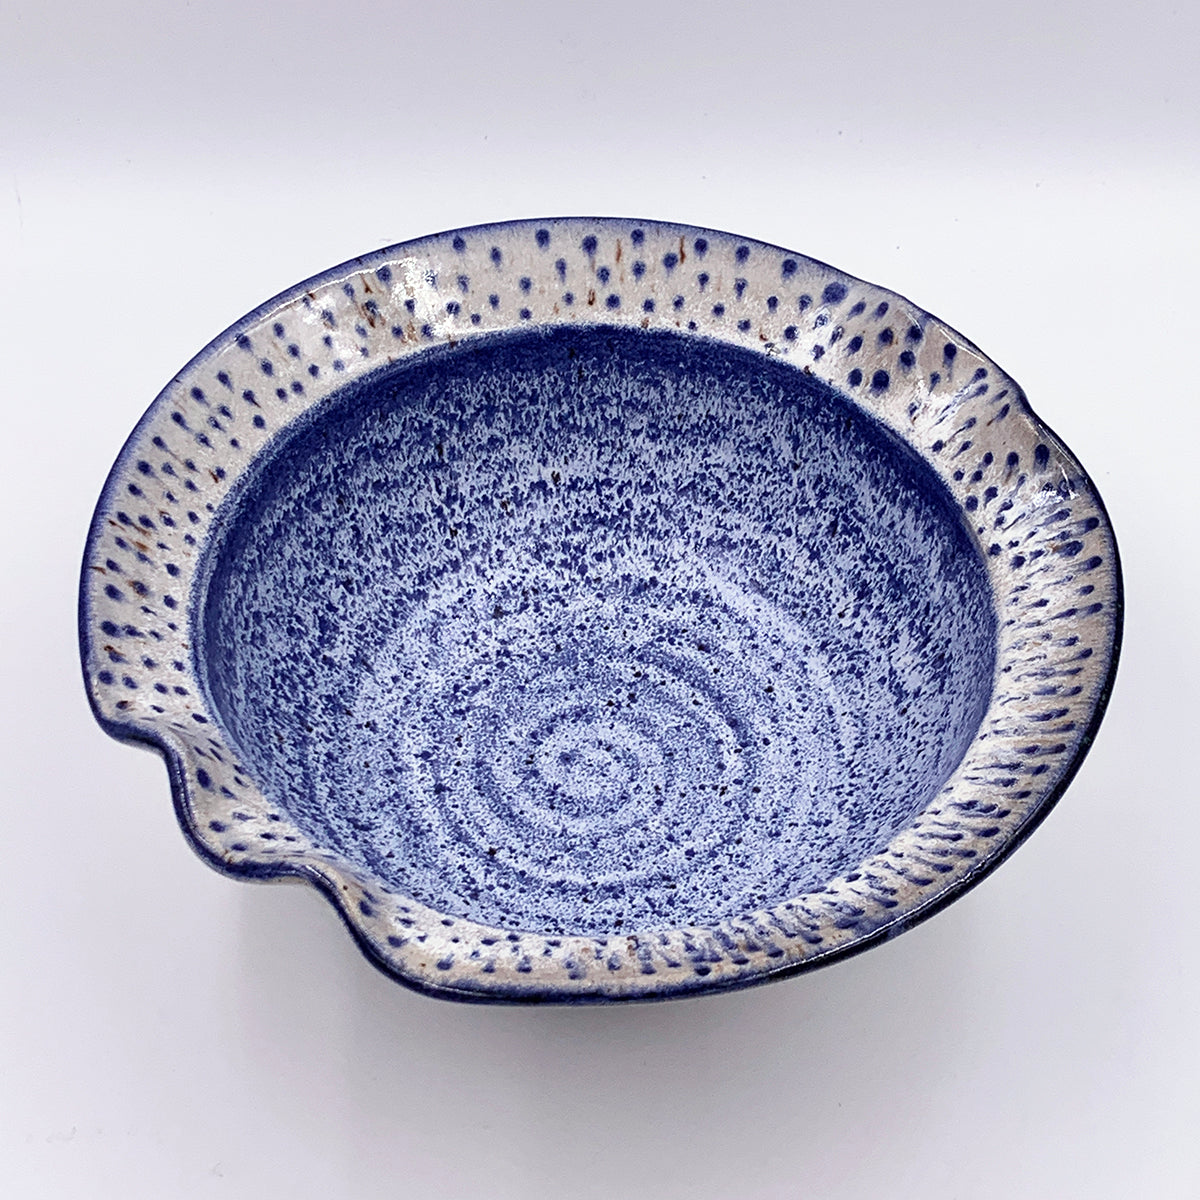 Frosty Blue with Dotted Ruffle Rim Medium Bowl